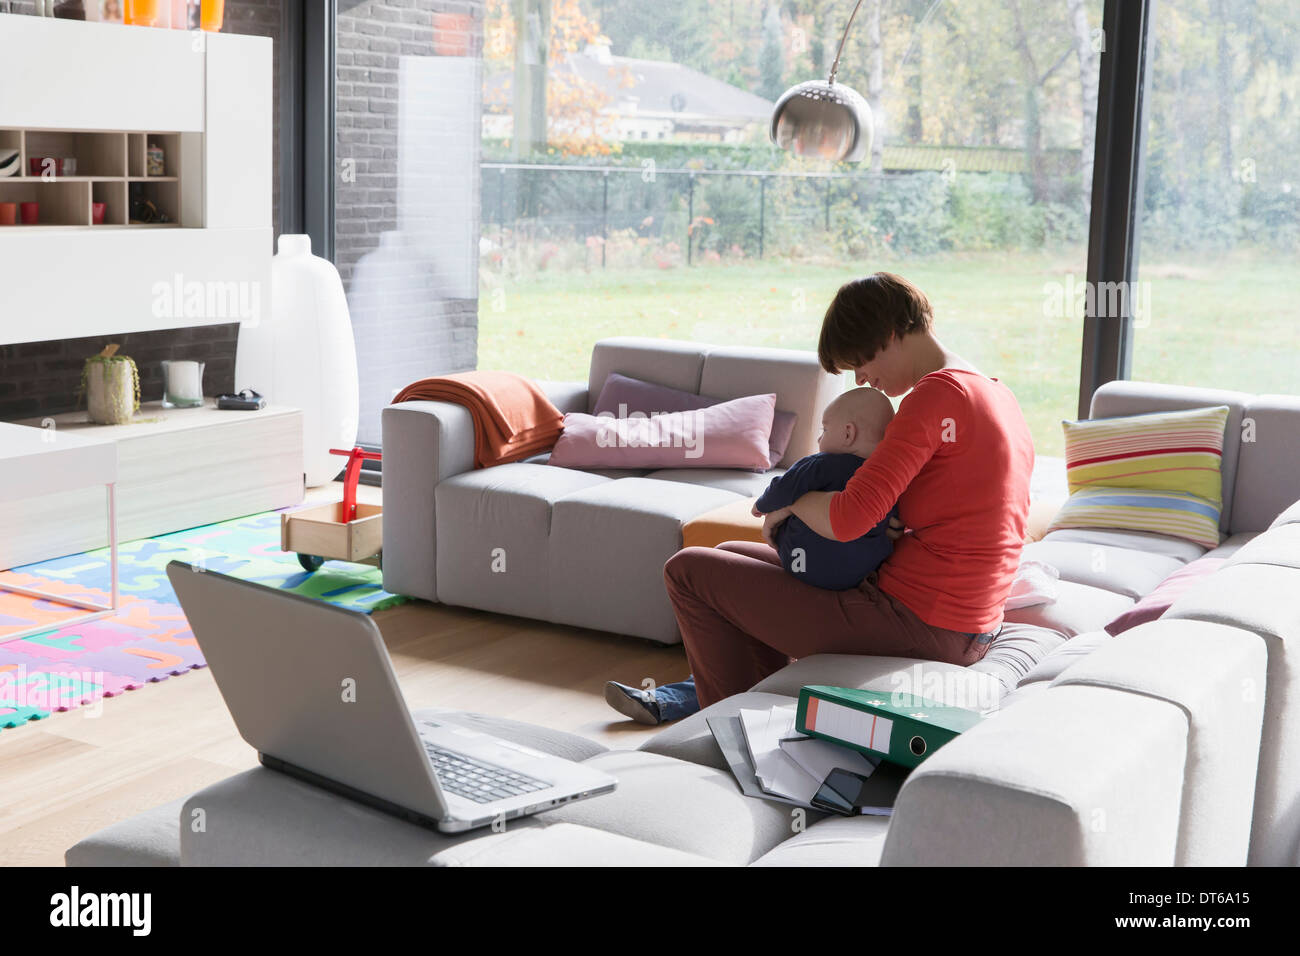 Mother with baby boy sitting on sofa at home - Stock Image